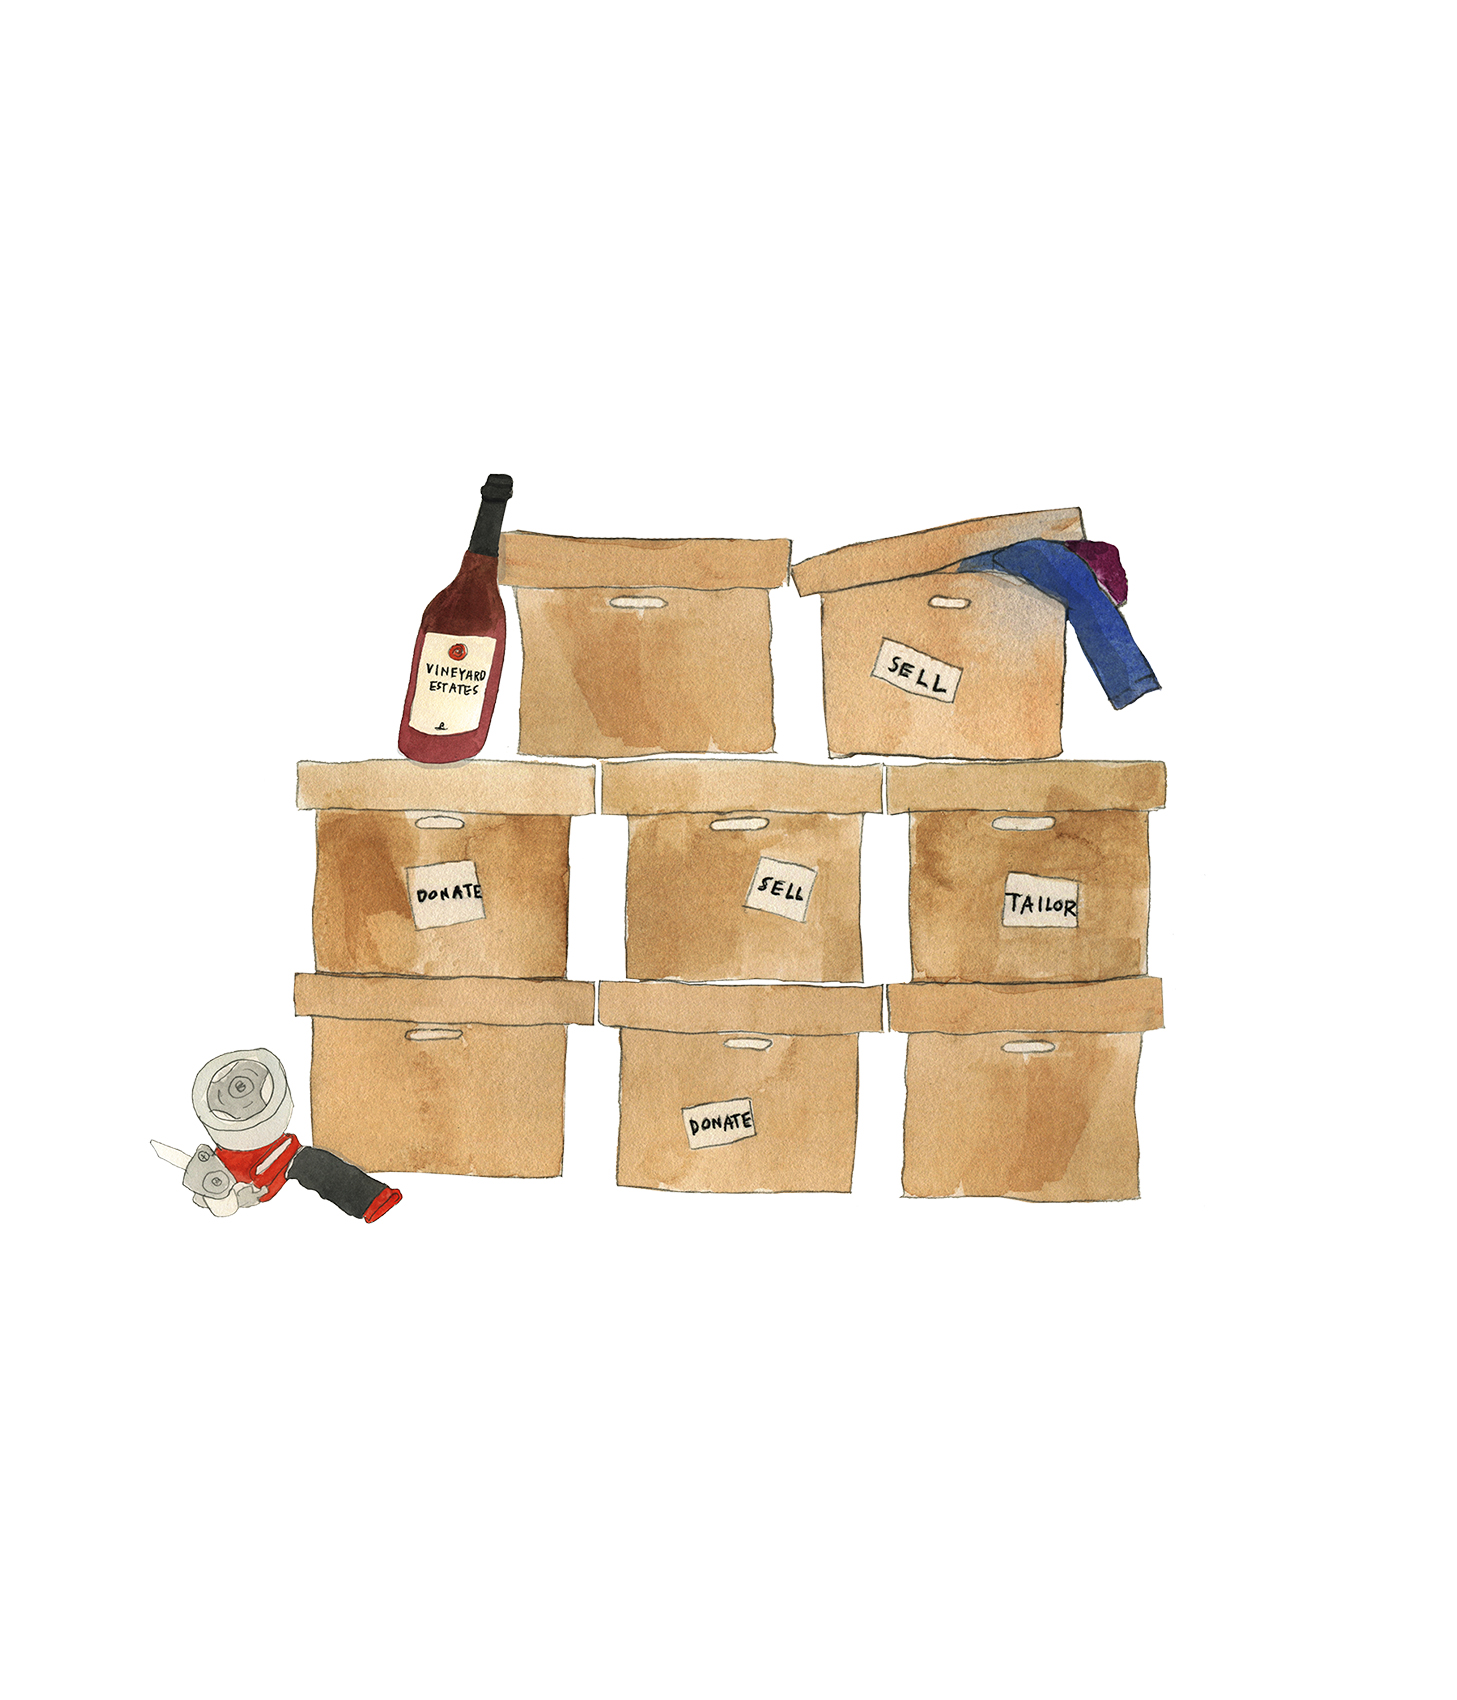 Illustration: Boxes of clothing to donate and sell